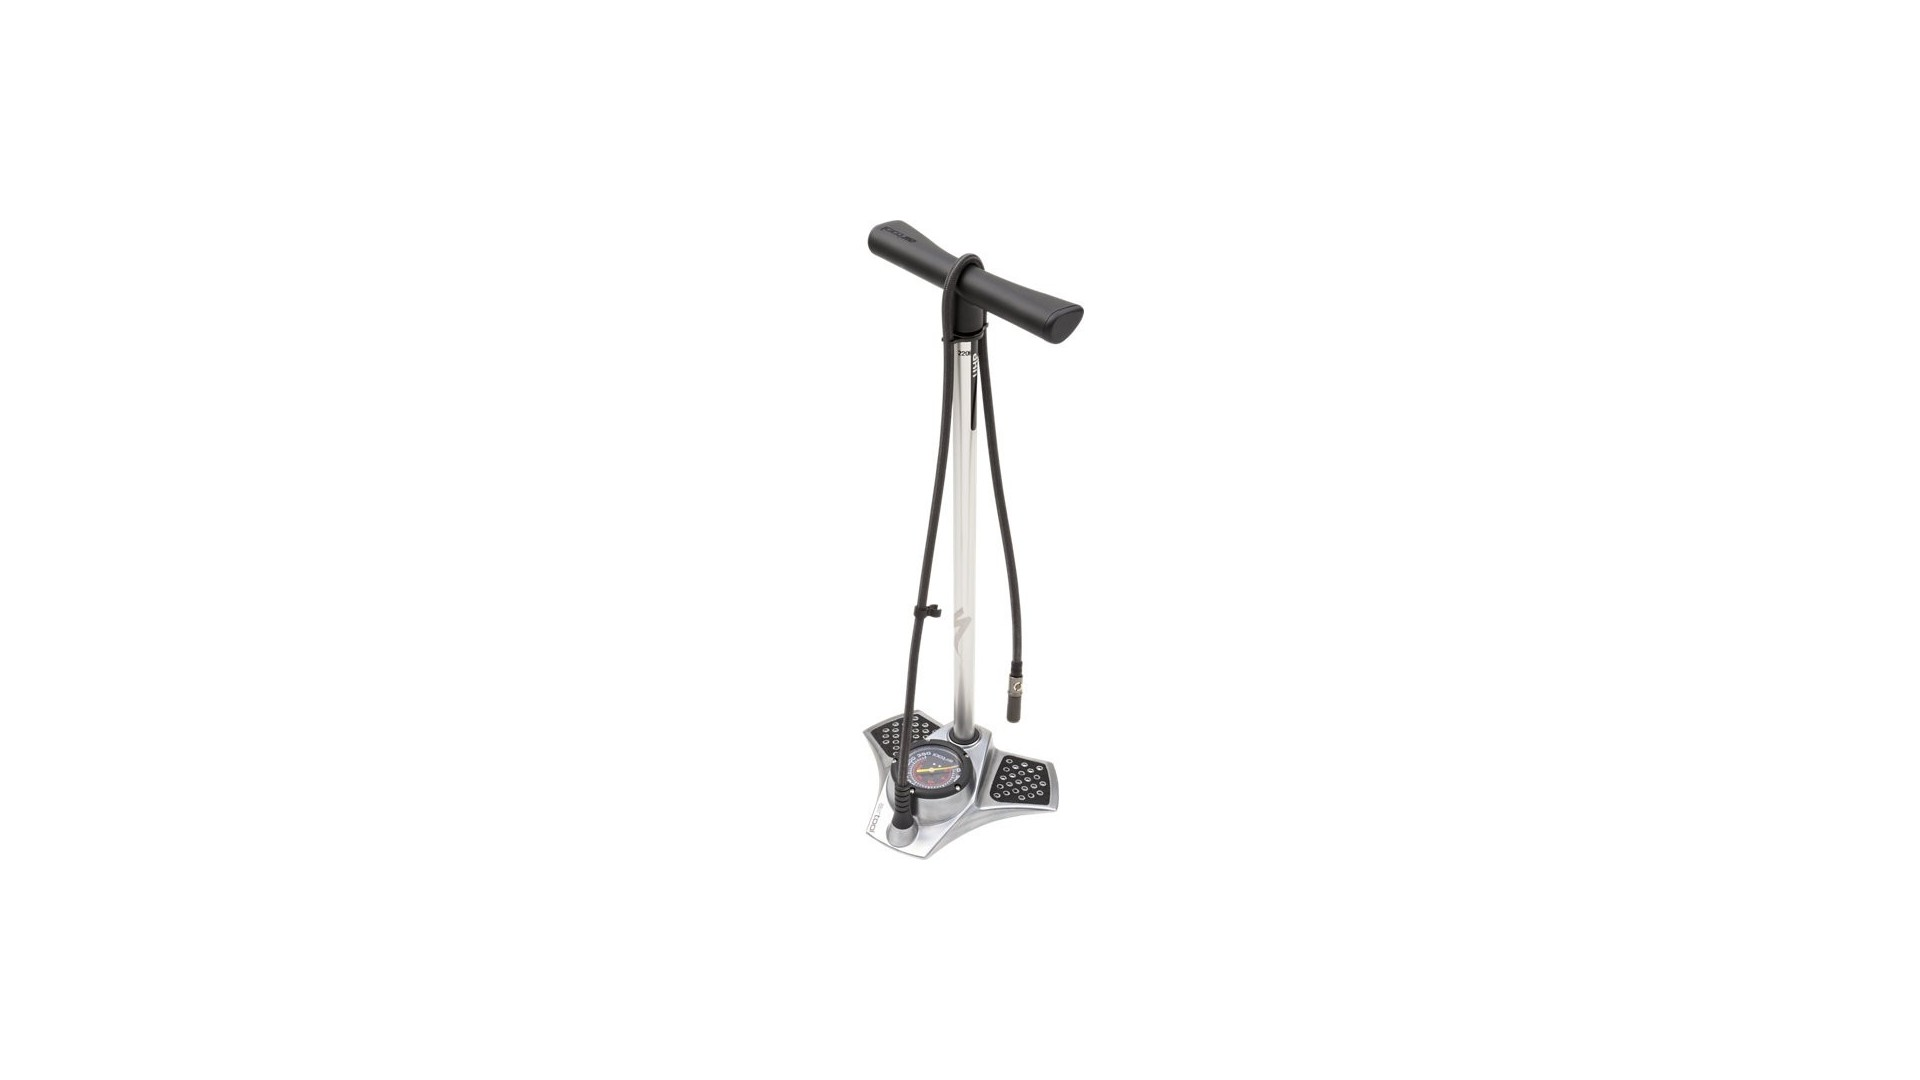 Air Tool UHP Floor Pump Poolished Specialized